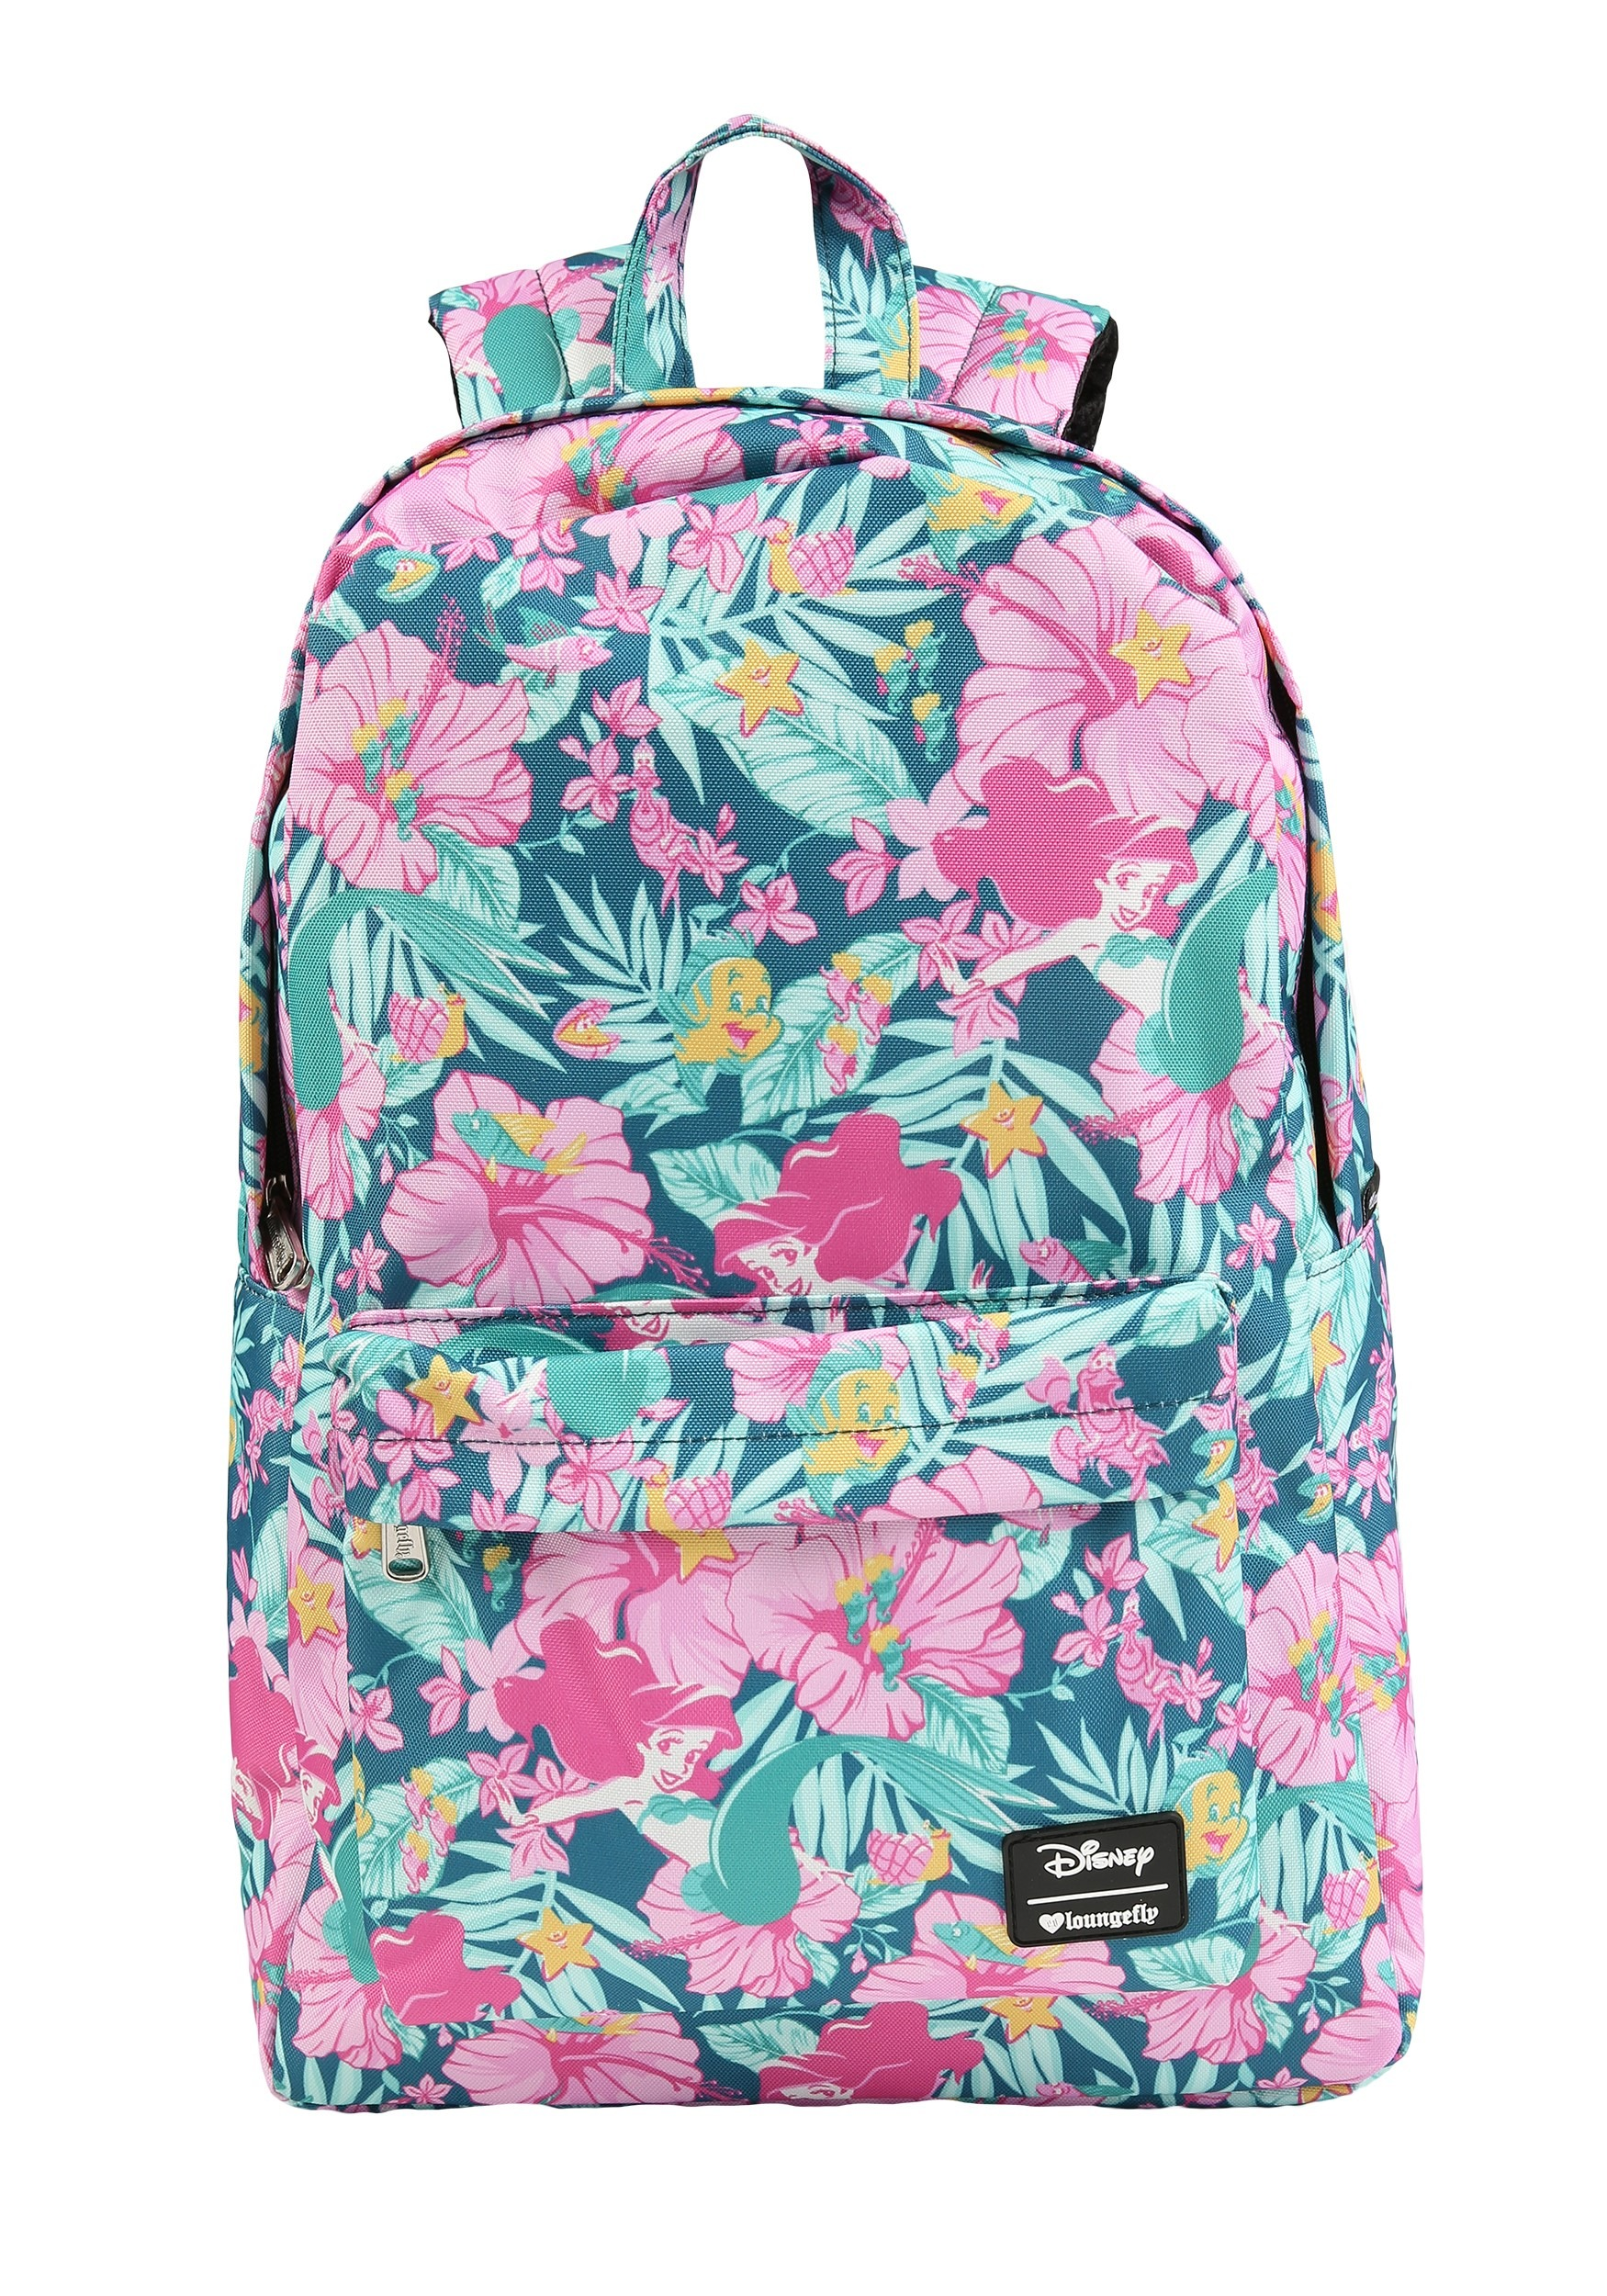 Loungefly Disney s The Little Mermaid Pastel Print Backpack2